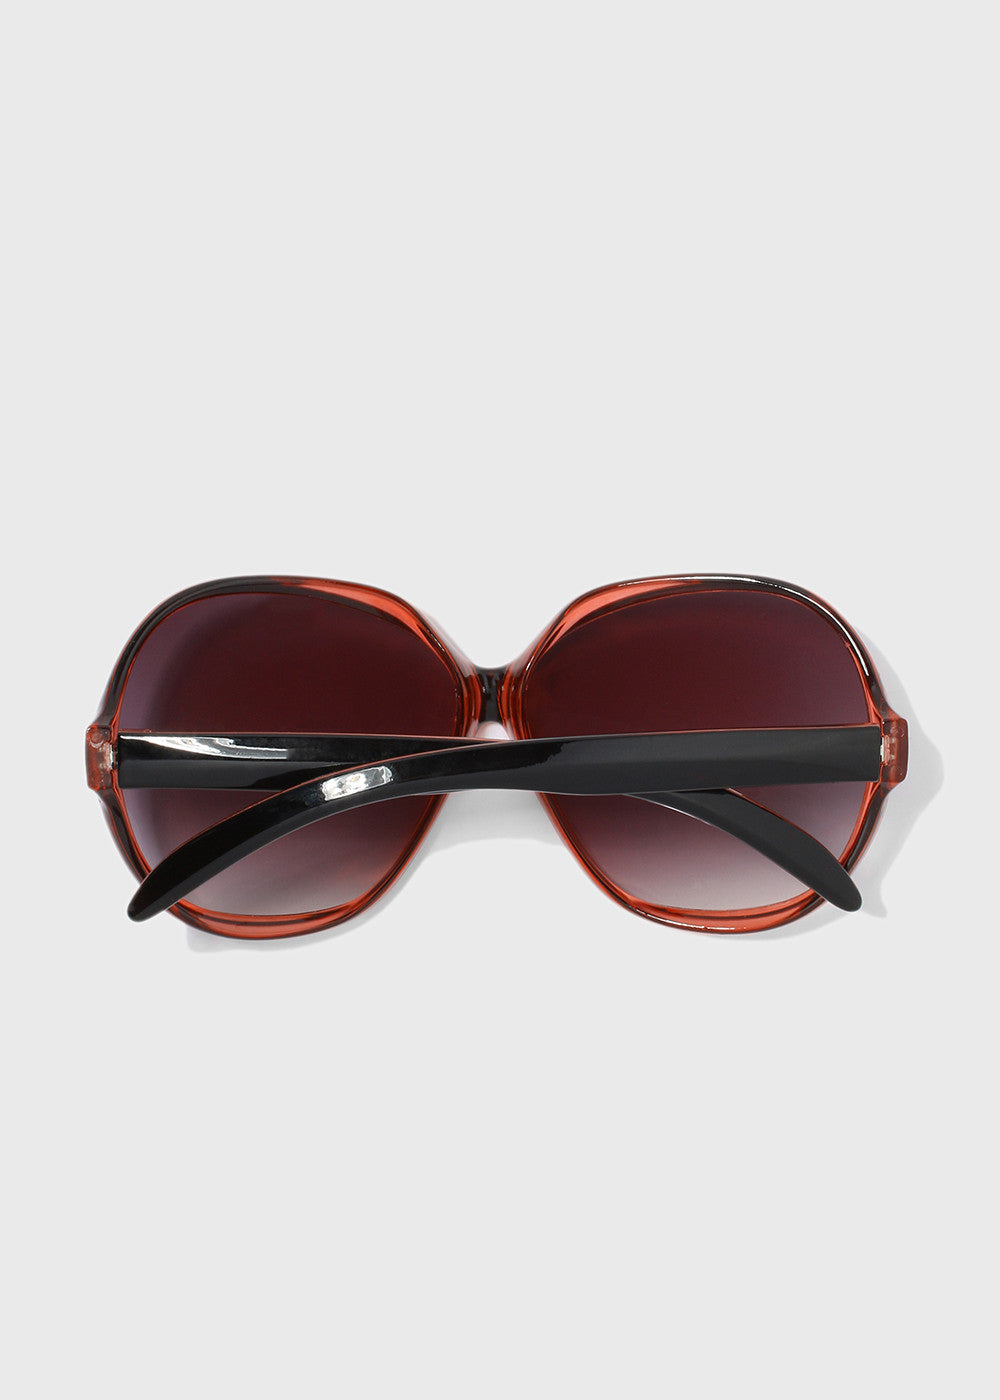 Vintage Oversize Round Sunglasses- Black/Red